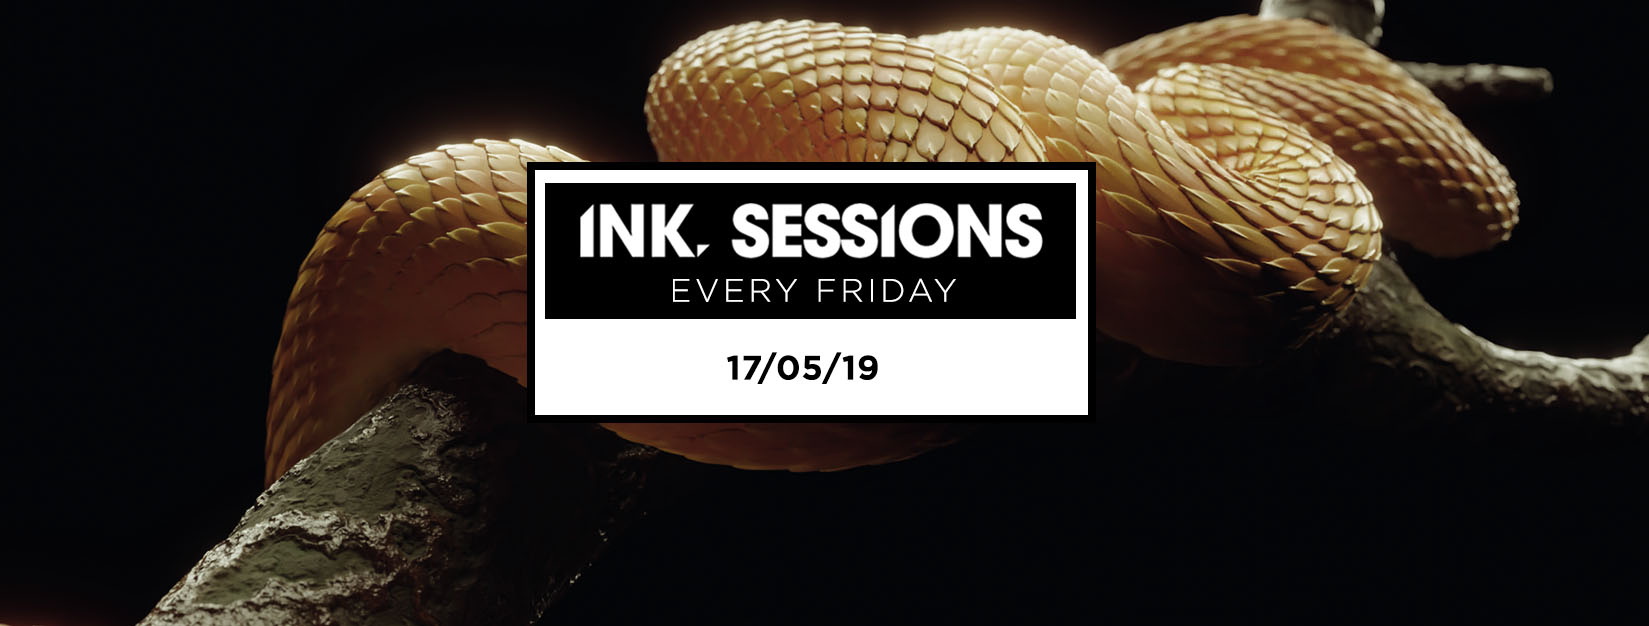 Ink Sessions – 17/05/19